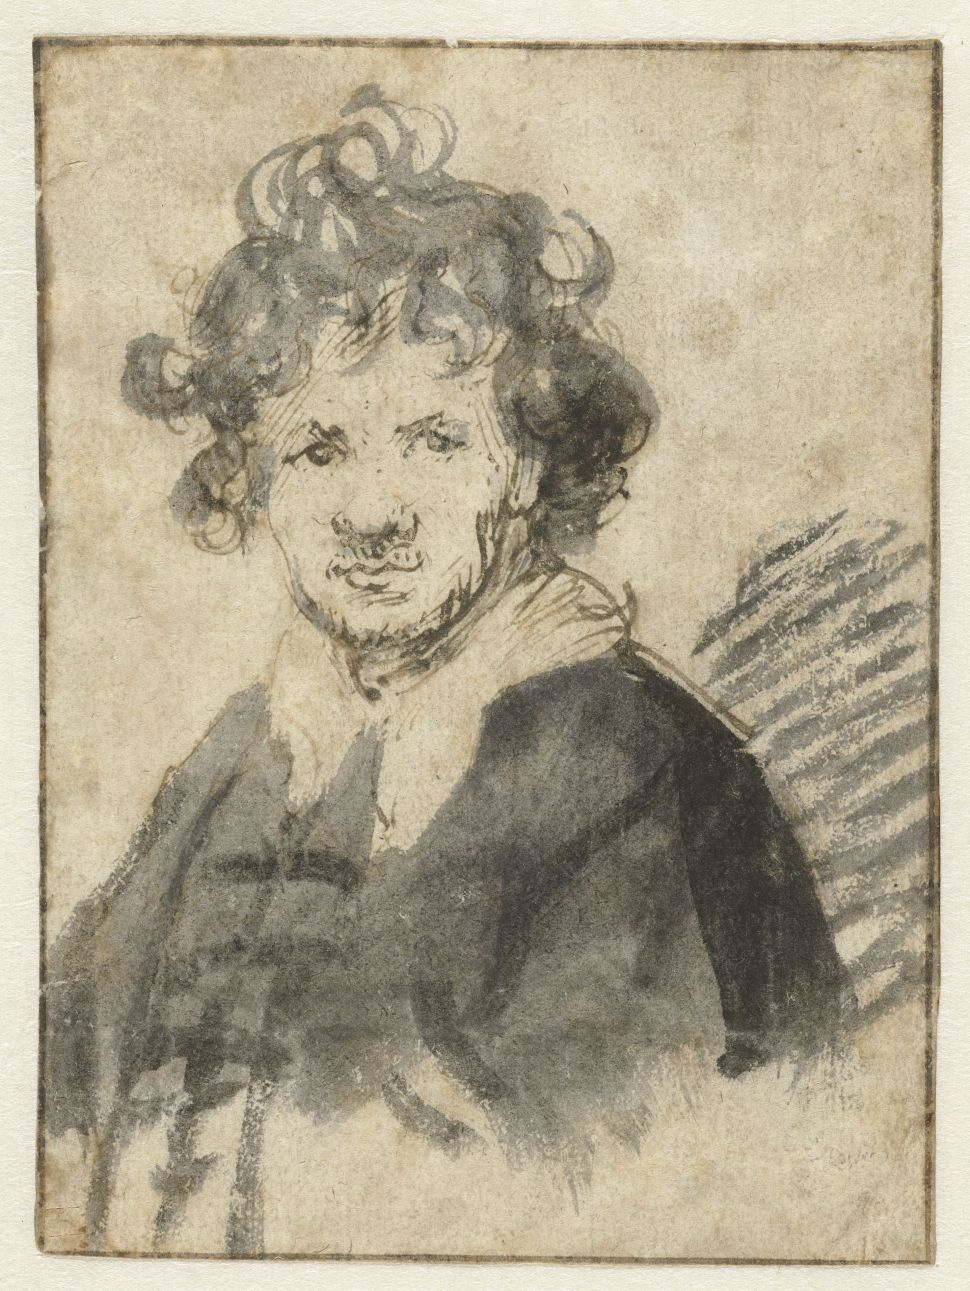 Rijksmuseum Celebrates Rembrandt's Birthday by Putting His Drawings Online